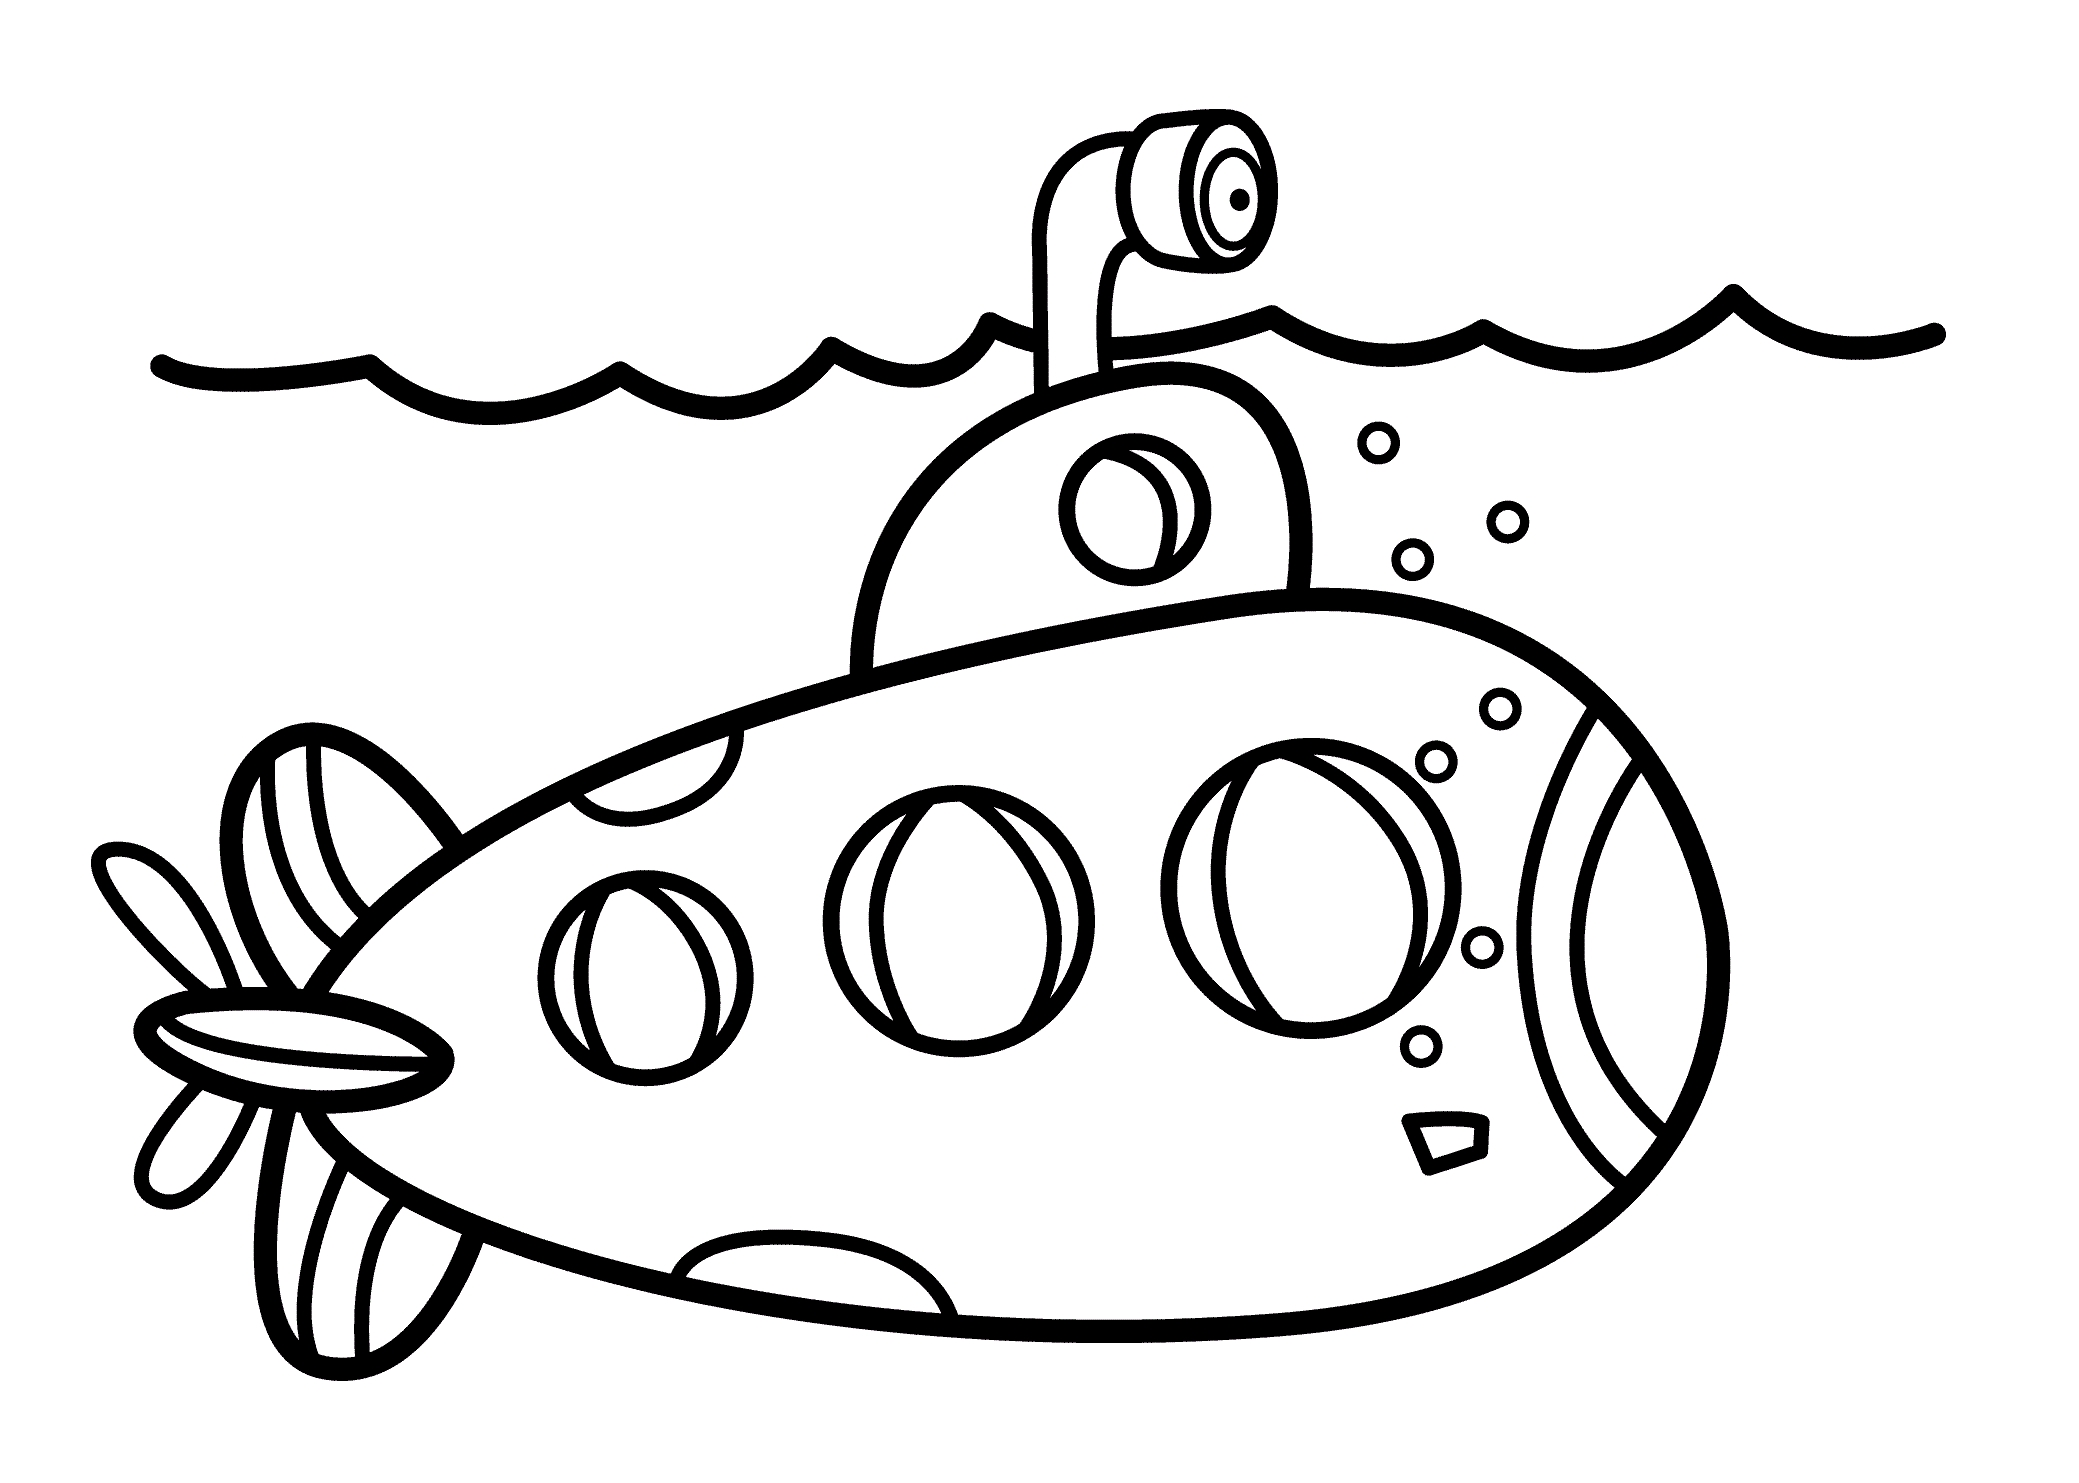 Submarine Coloring Pages - Beatles Yellow Submarine Coloring Page Coloring Home